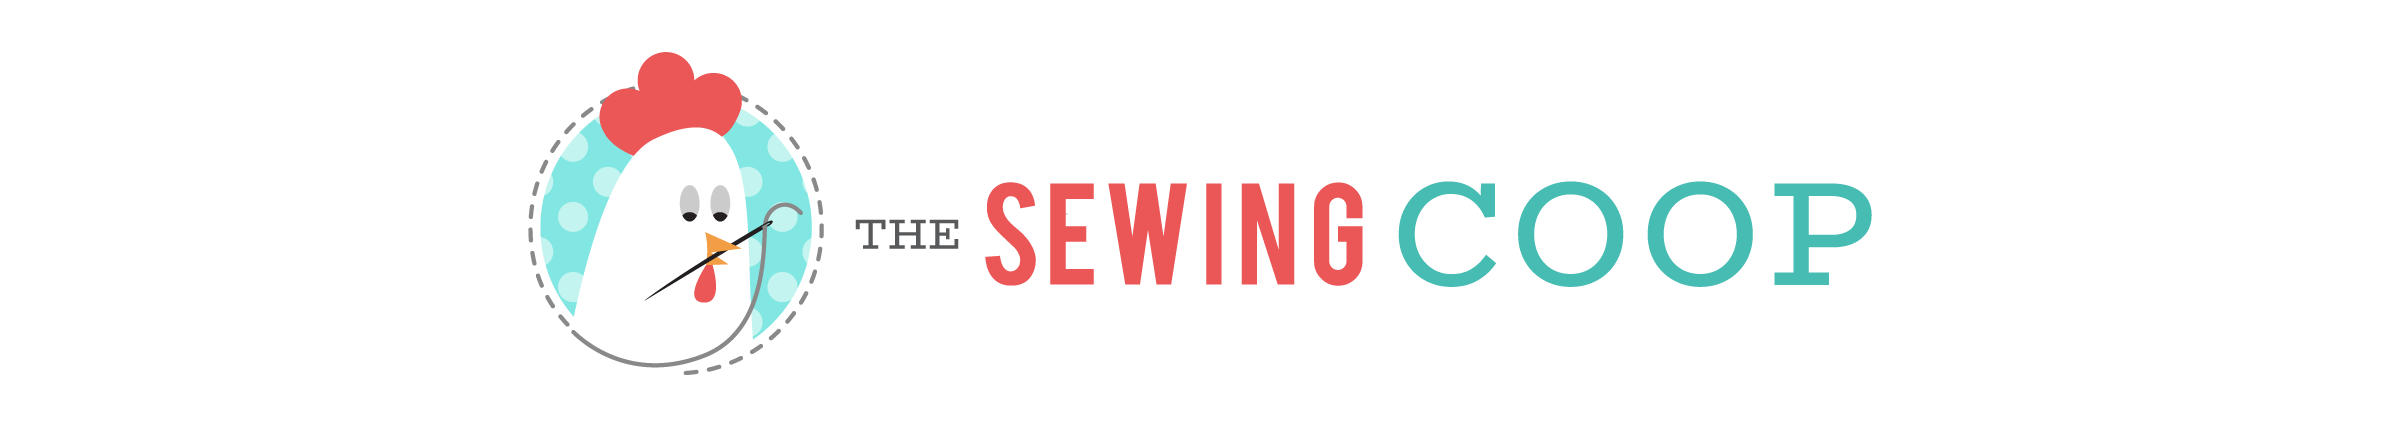 The Sewing Coop